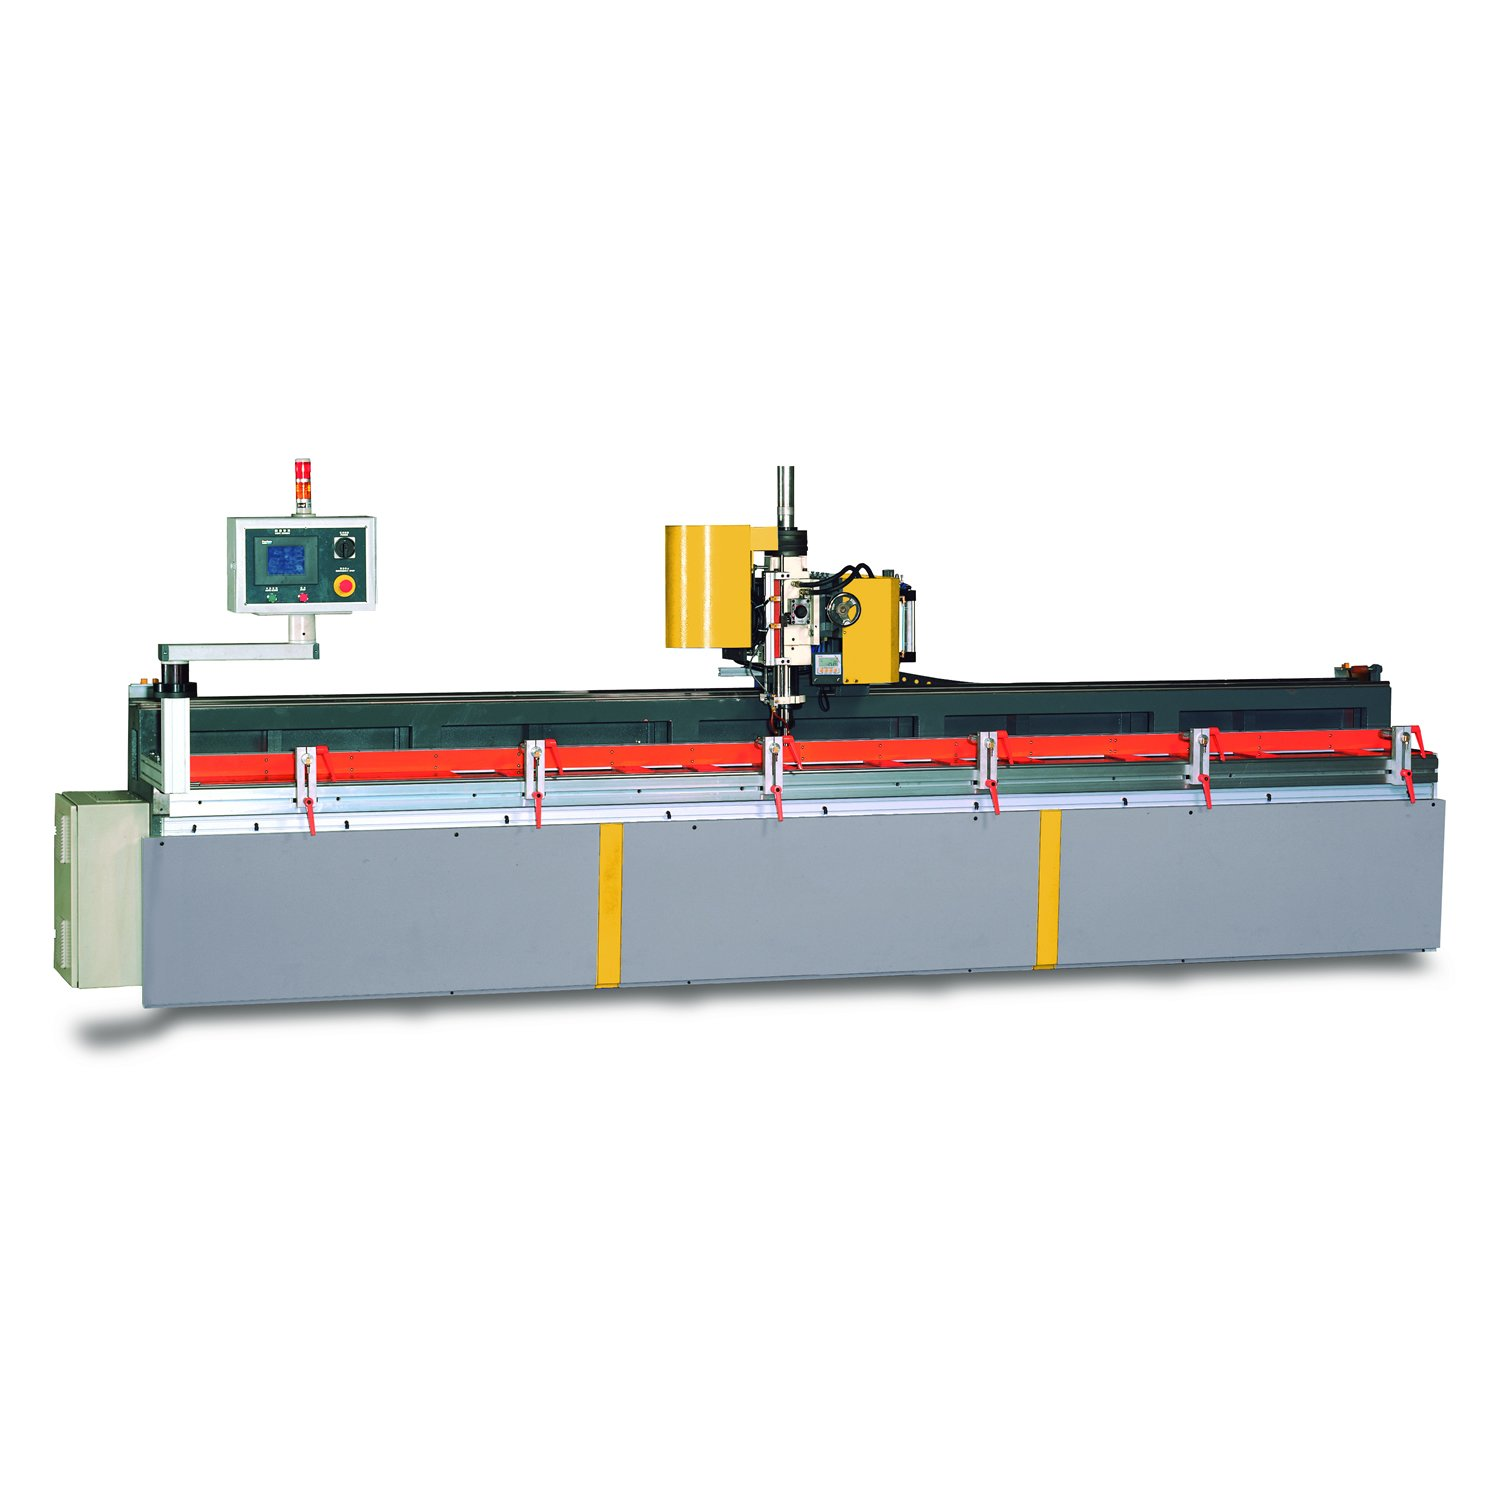 PMI Sawing and Drilling Machines